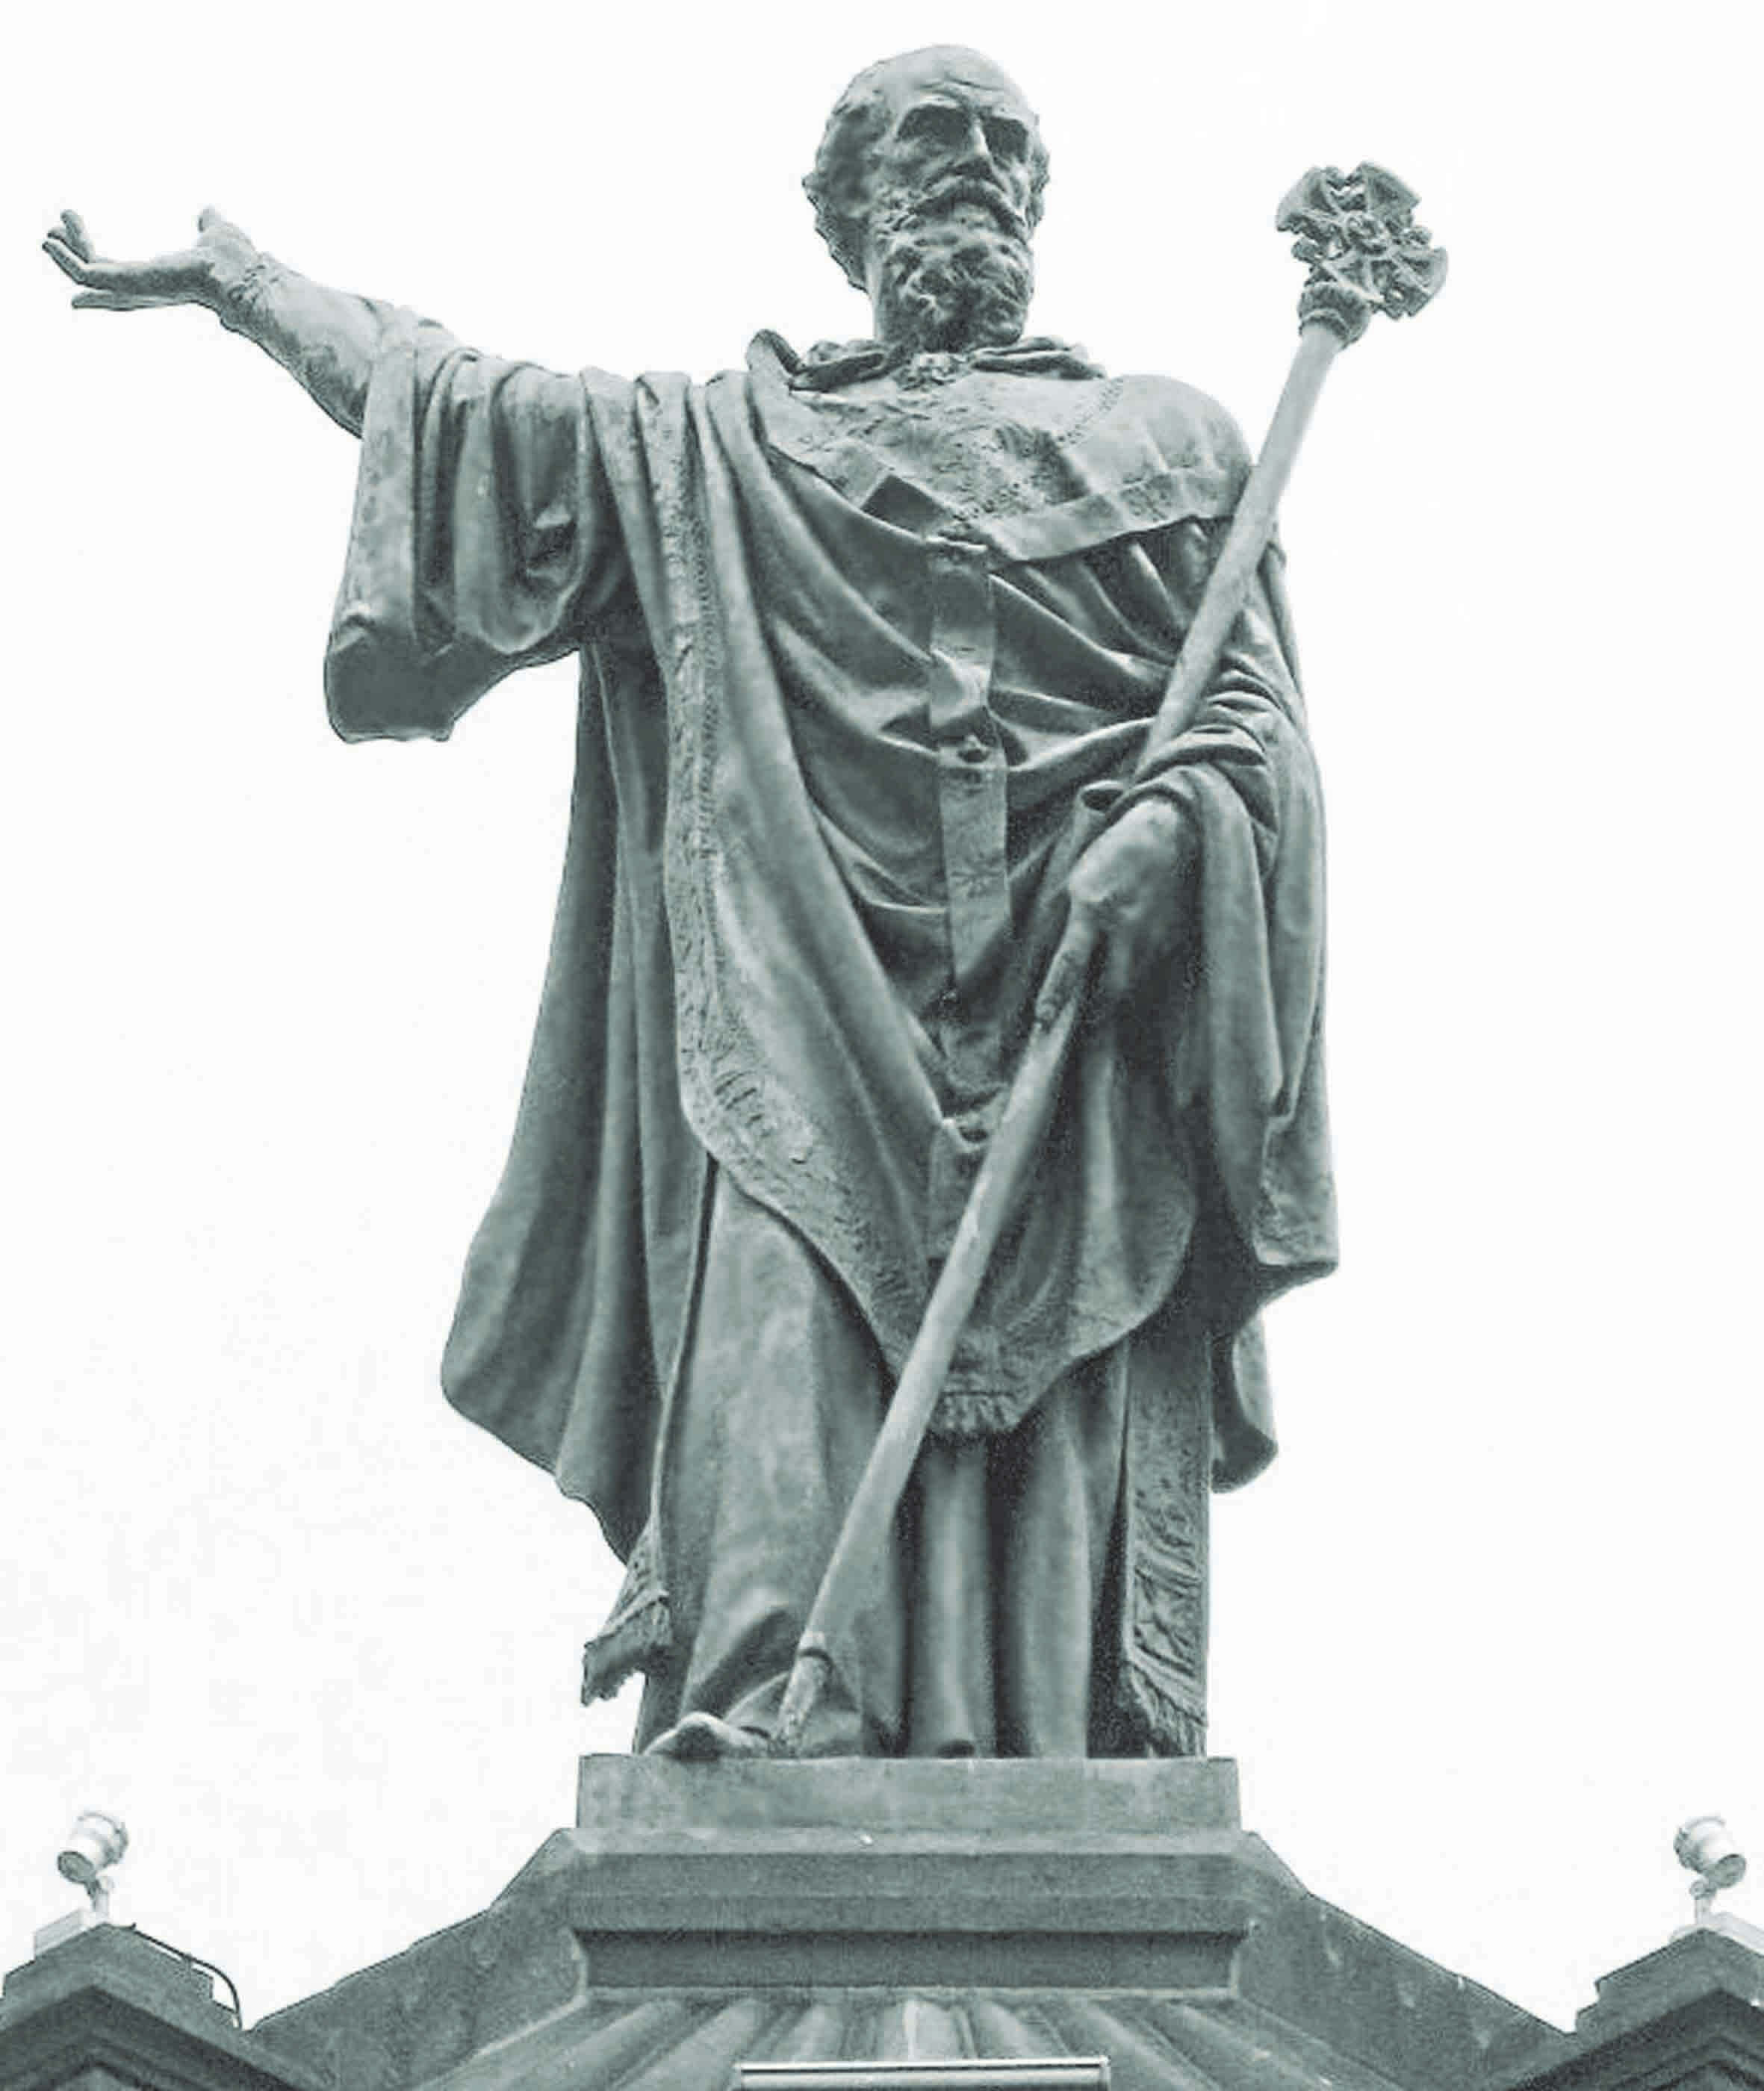 Statue of Pope Urban II in Clermont, France, where his call to arms against the infidel in the Holy Land launched the First Crusade